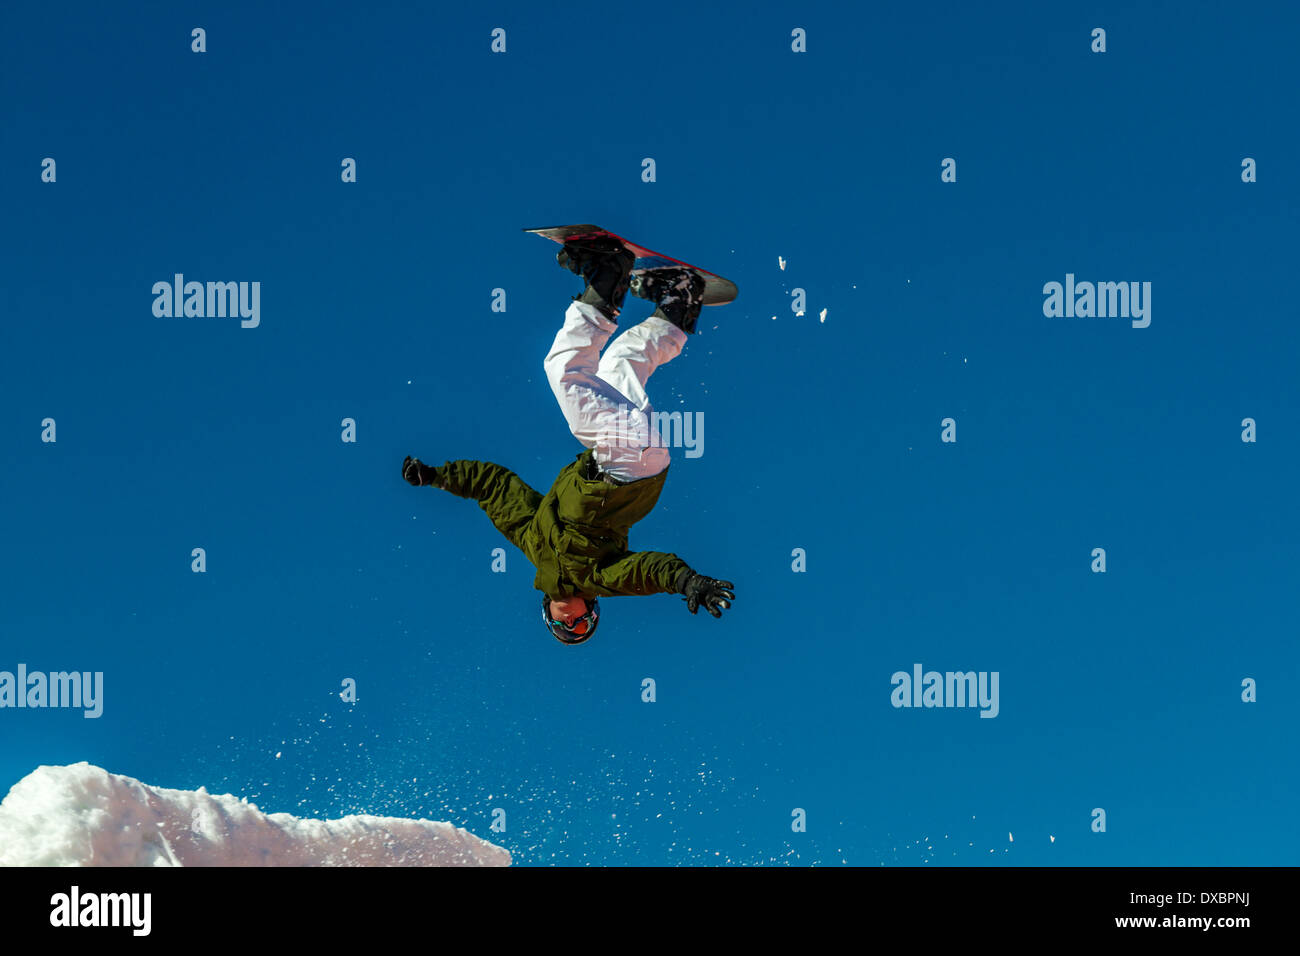 Person learning to snowboard jump: Airborne snowboarder upside down after taking off on a jump - Stock Image